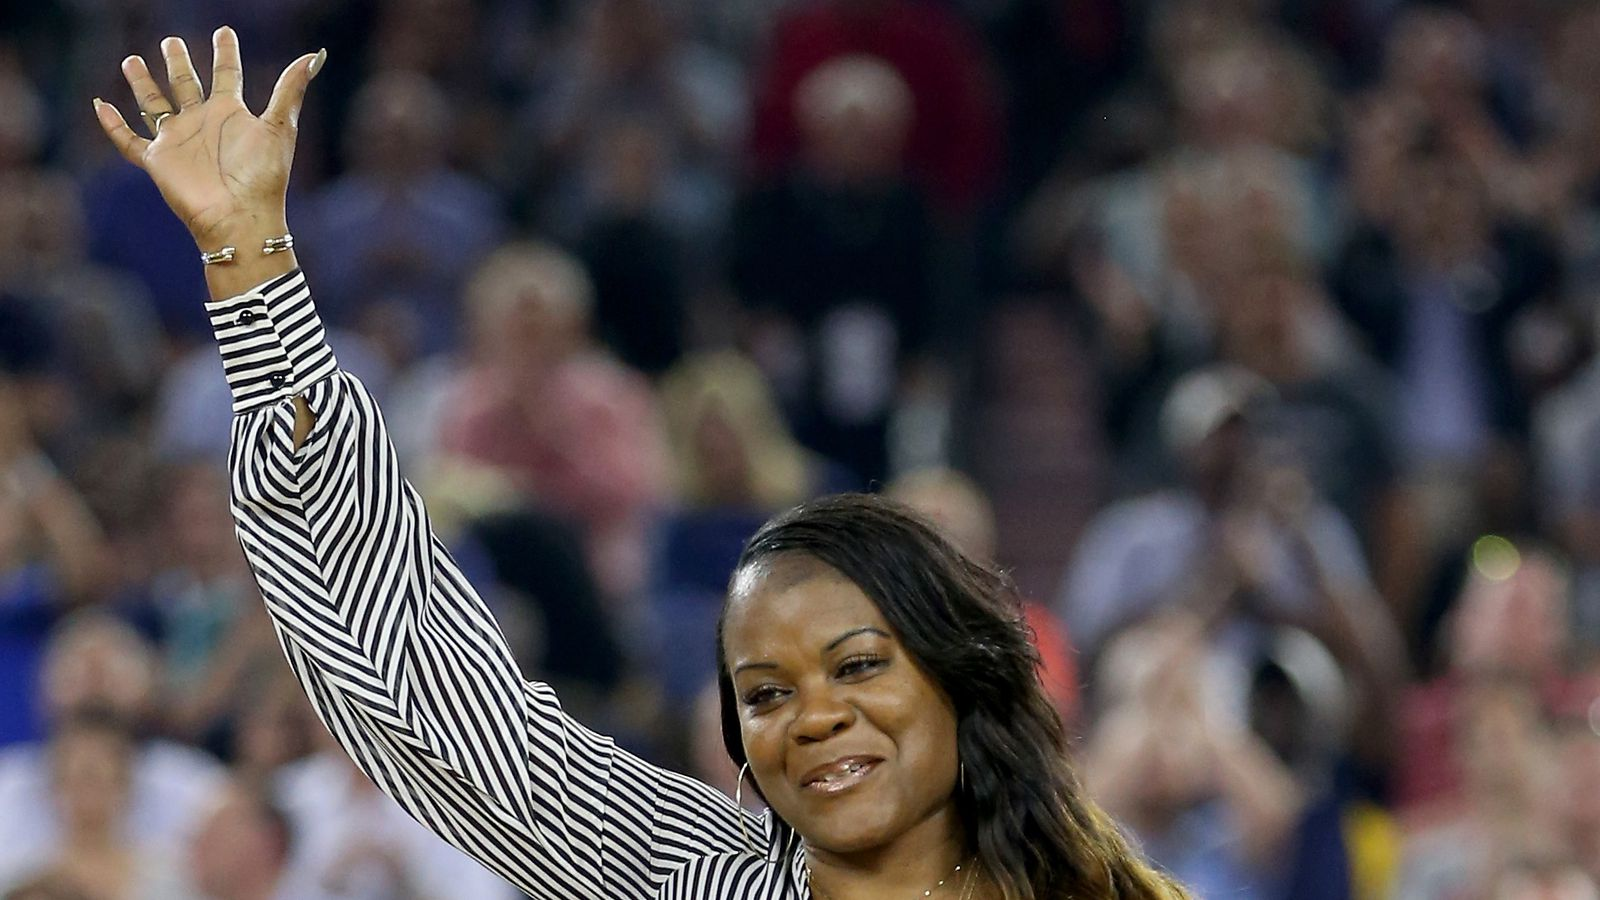 Sheryl swoopes broke records and barriers